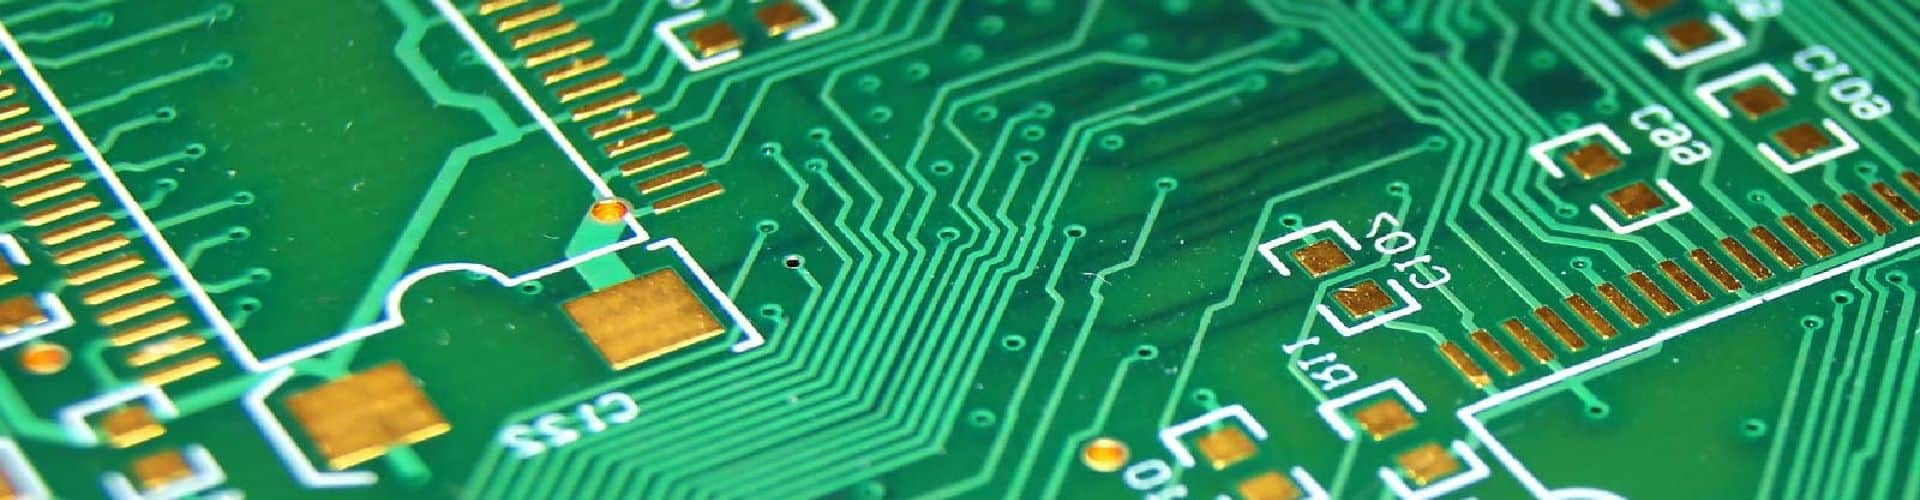 What Does A Circuit Board Do?